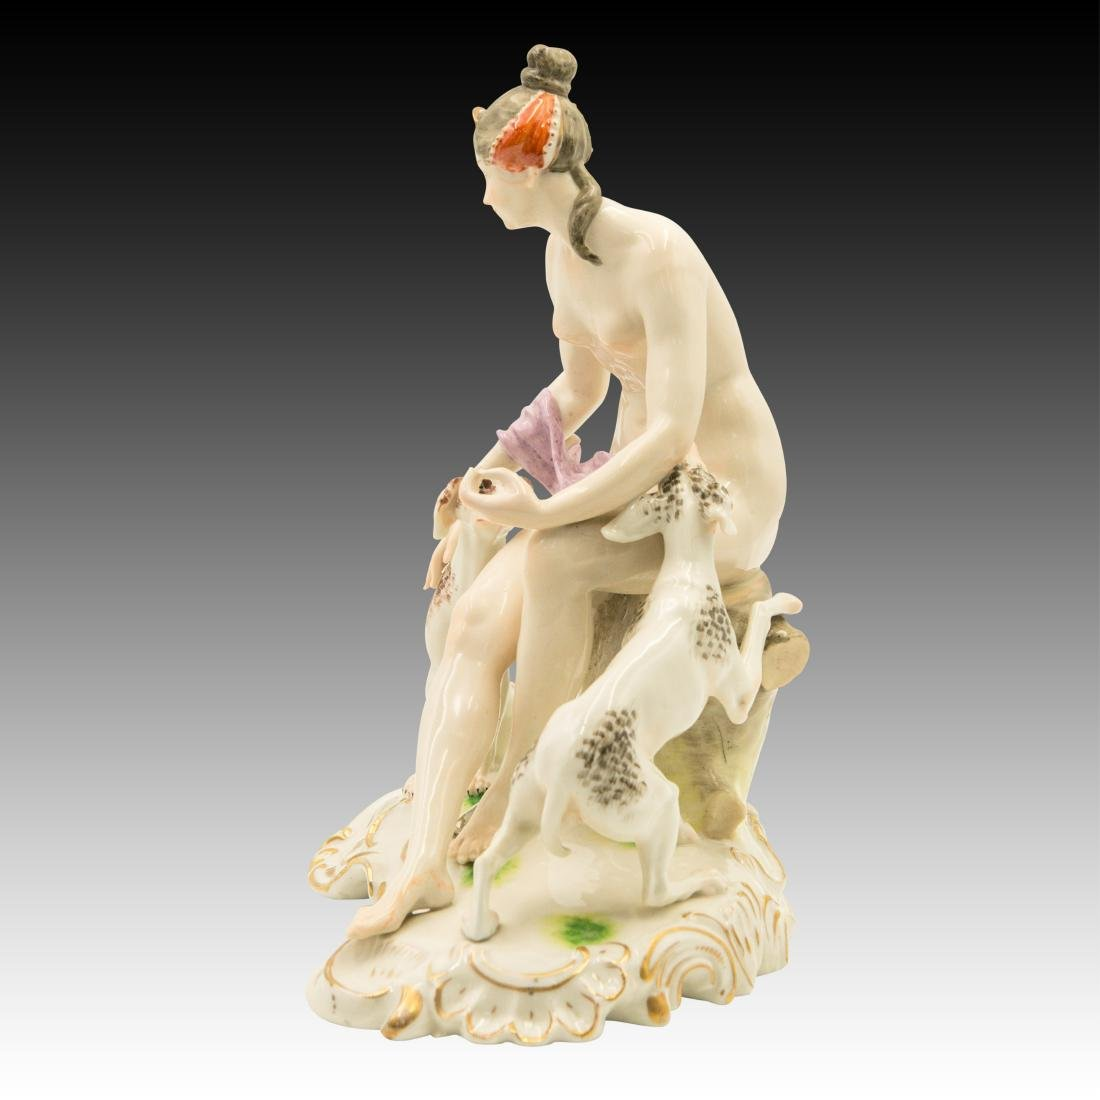 Ceramic Figurine of a Nude Woman and her Dogs - 2